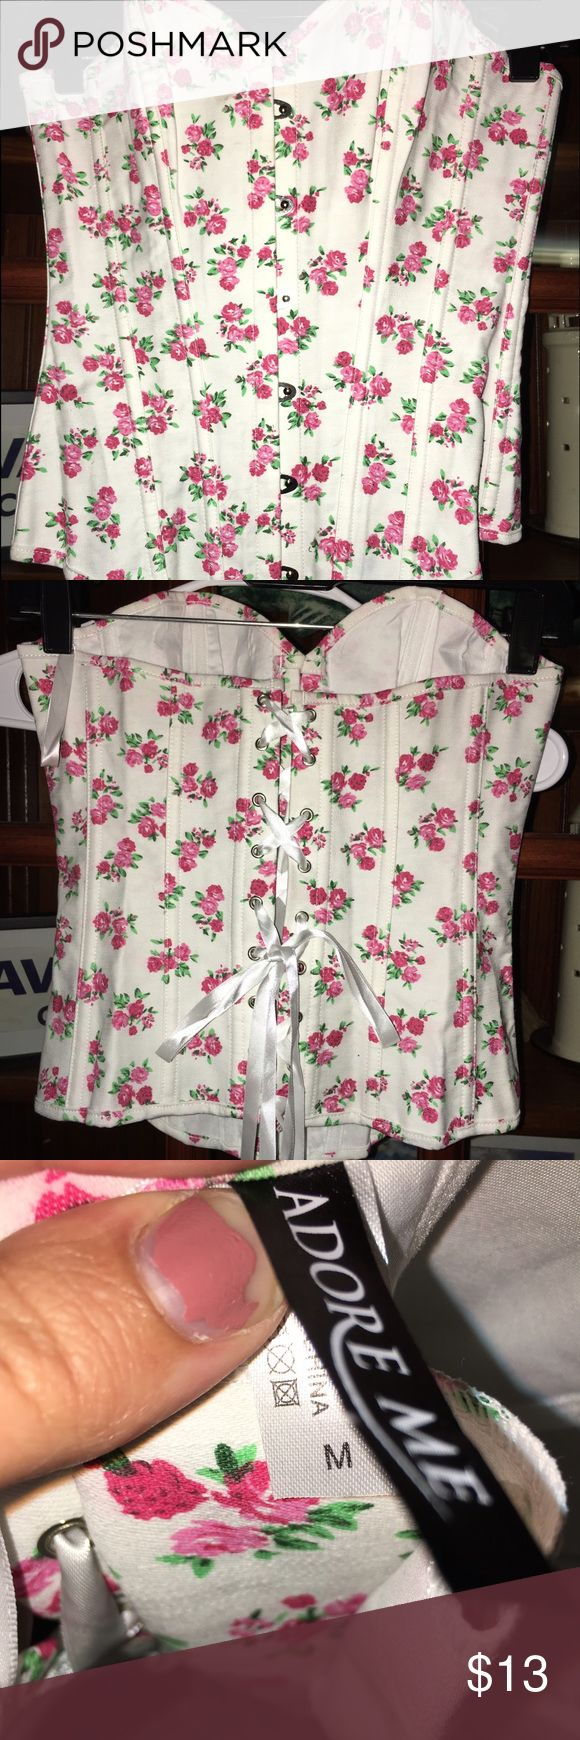 Adore me Floral bustier corset top ❤️ never worn. Not my style. Beautiful floral pattern, easy fastens in front and lace tie back for multiple sizing fits ! Adore Me Tops